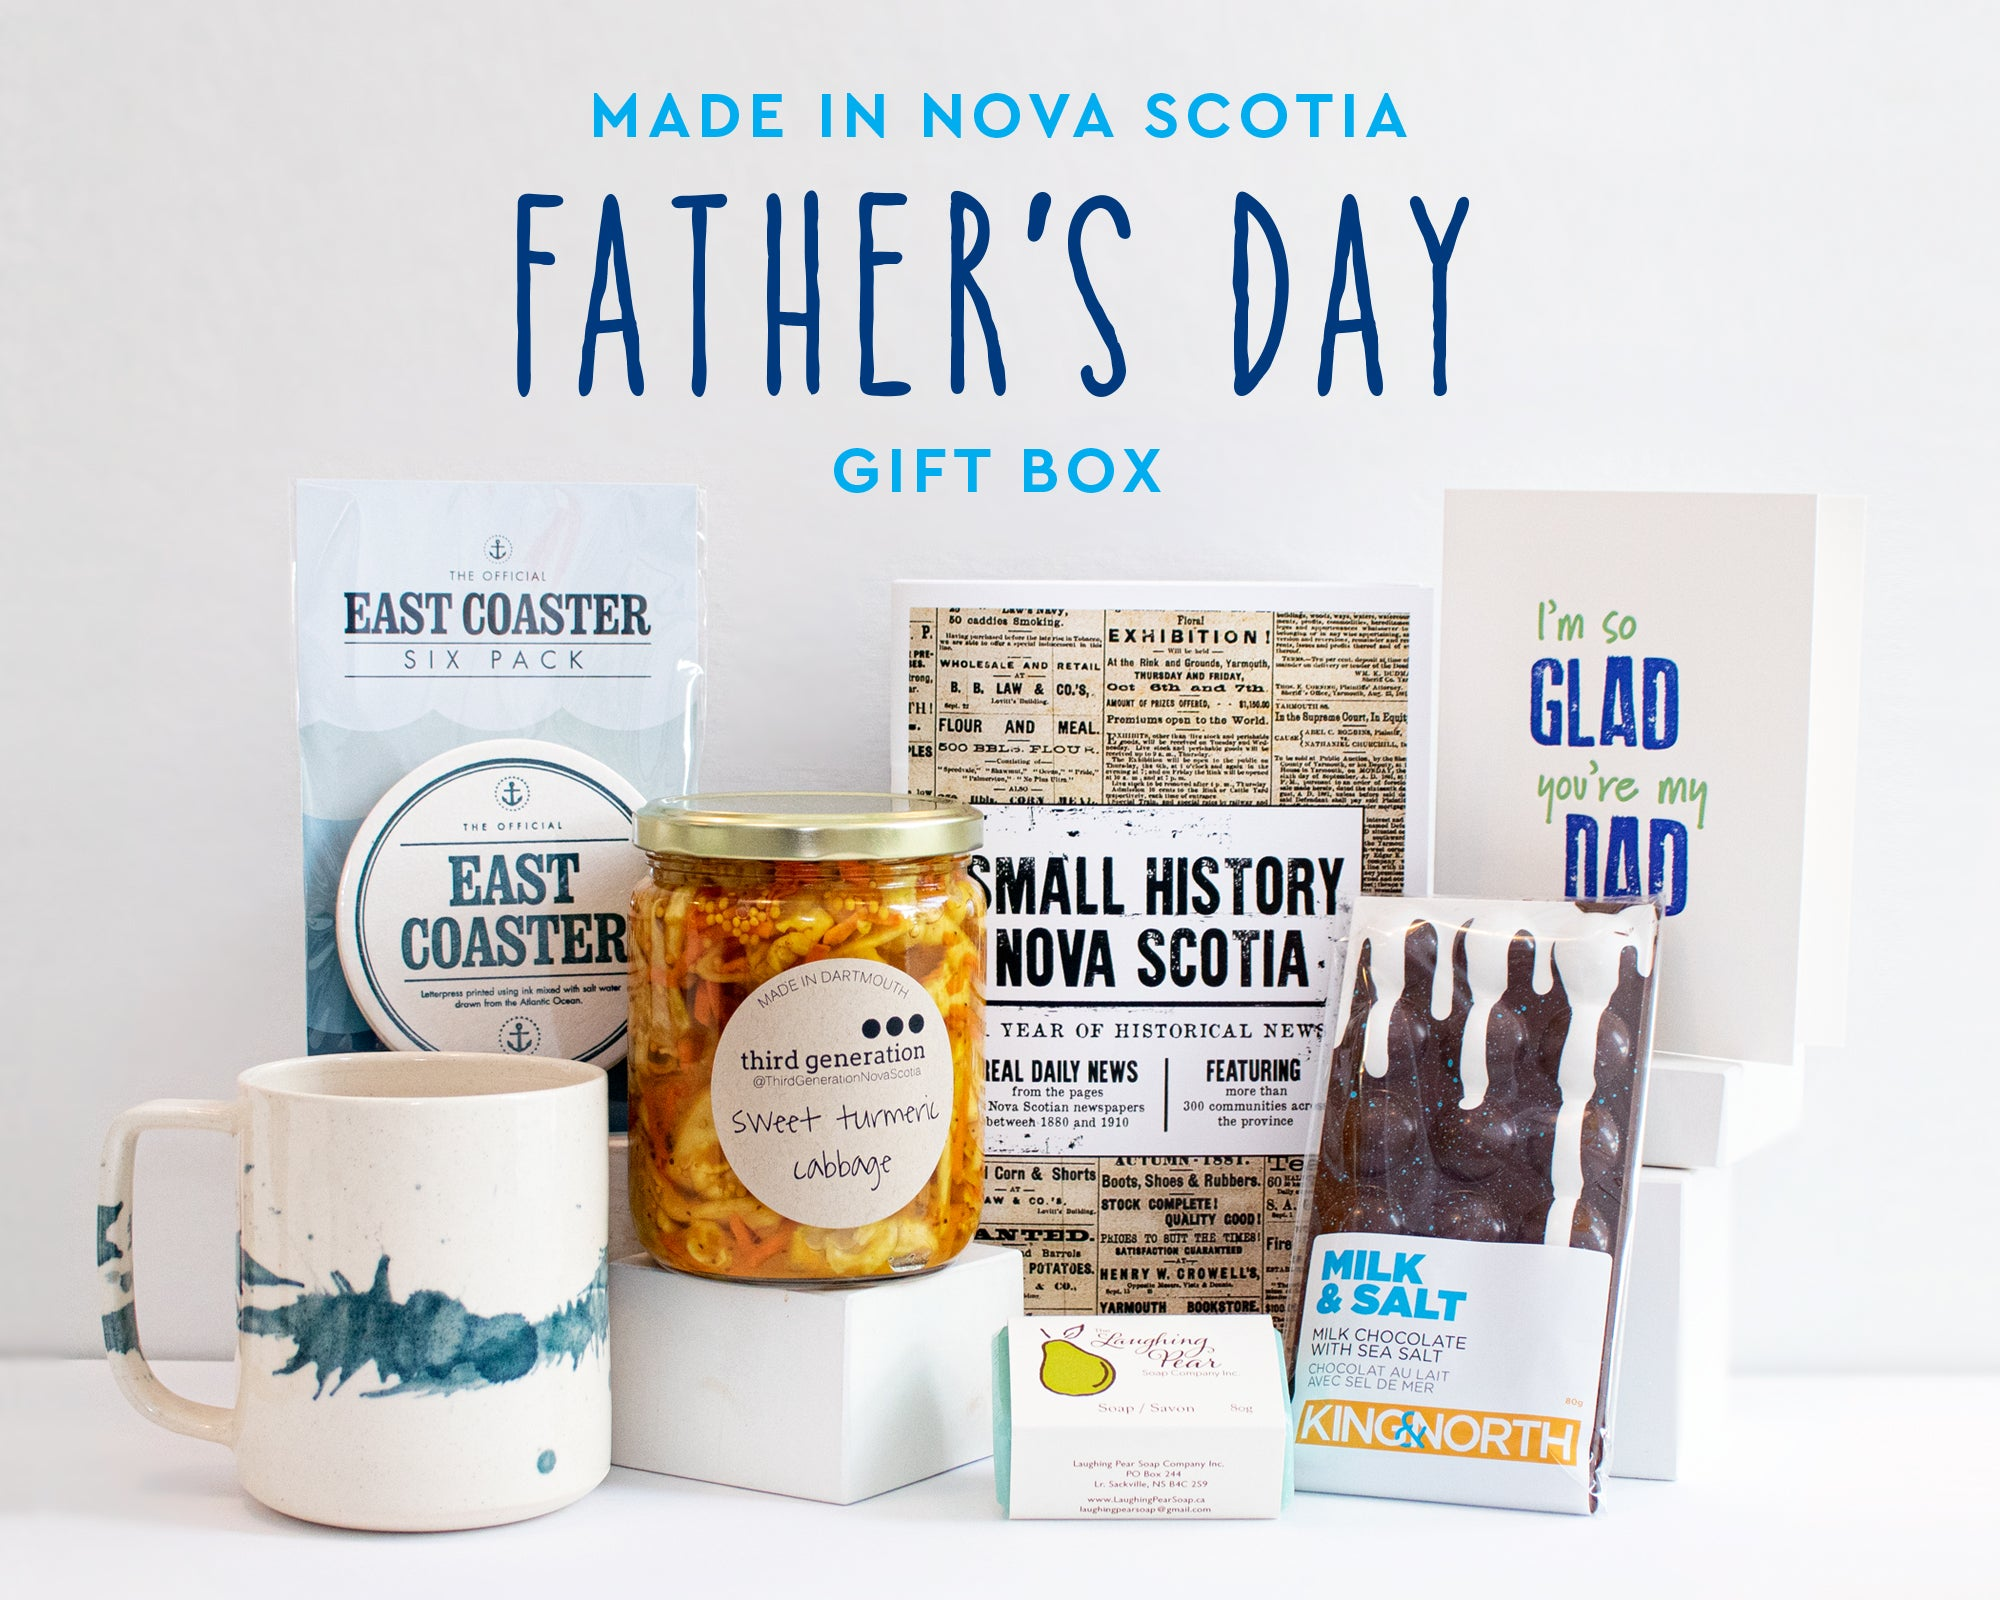 Made in Nova Scotia Father's Day Gift Box